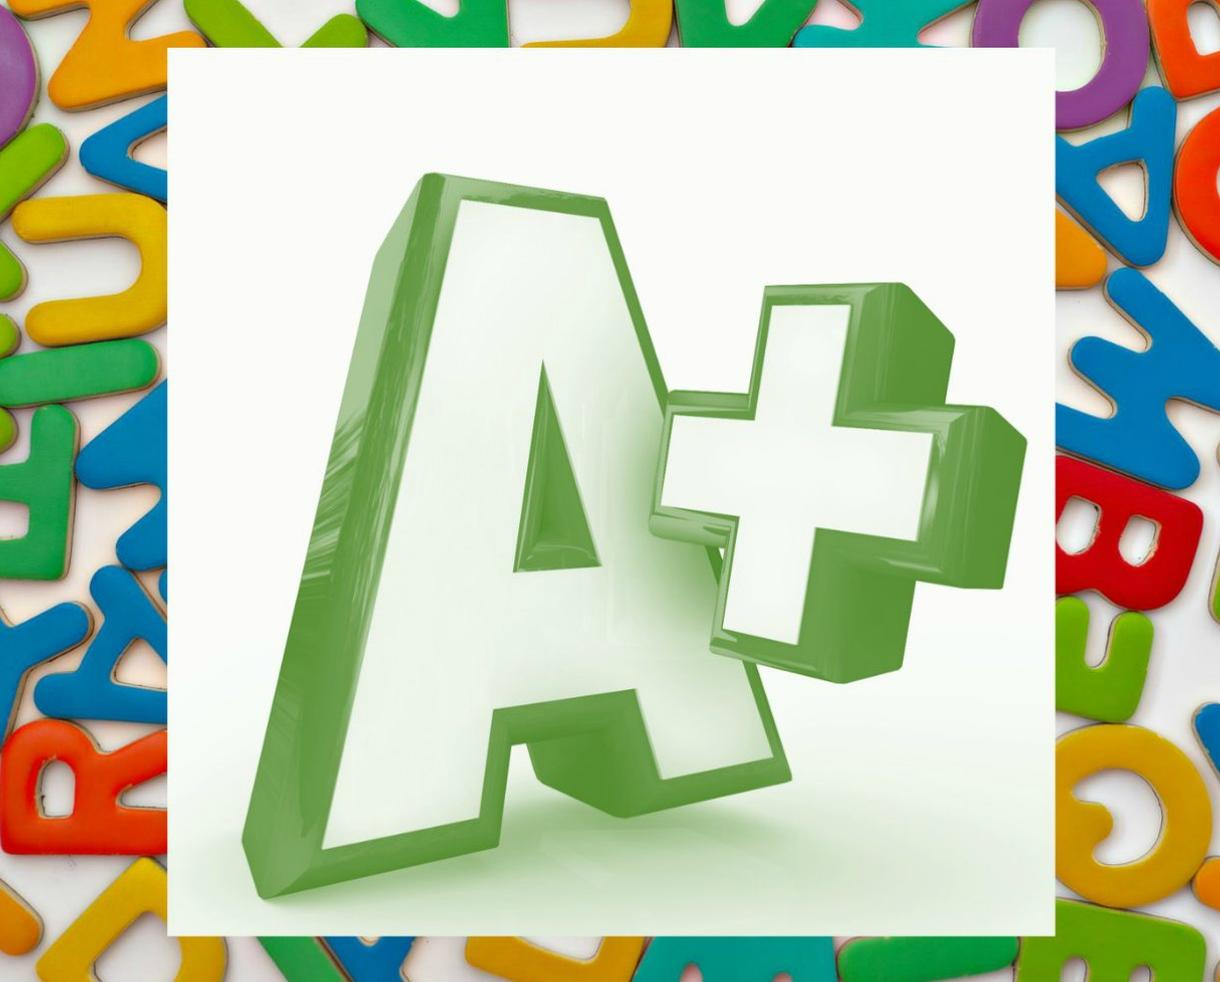 One Week of Half-Day A+ Learning Club Camp